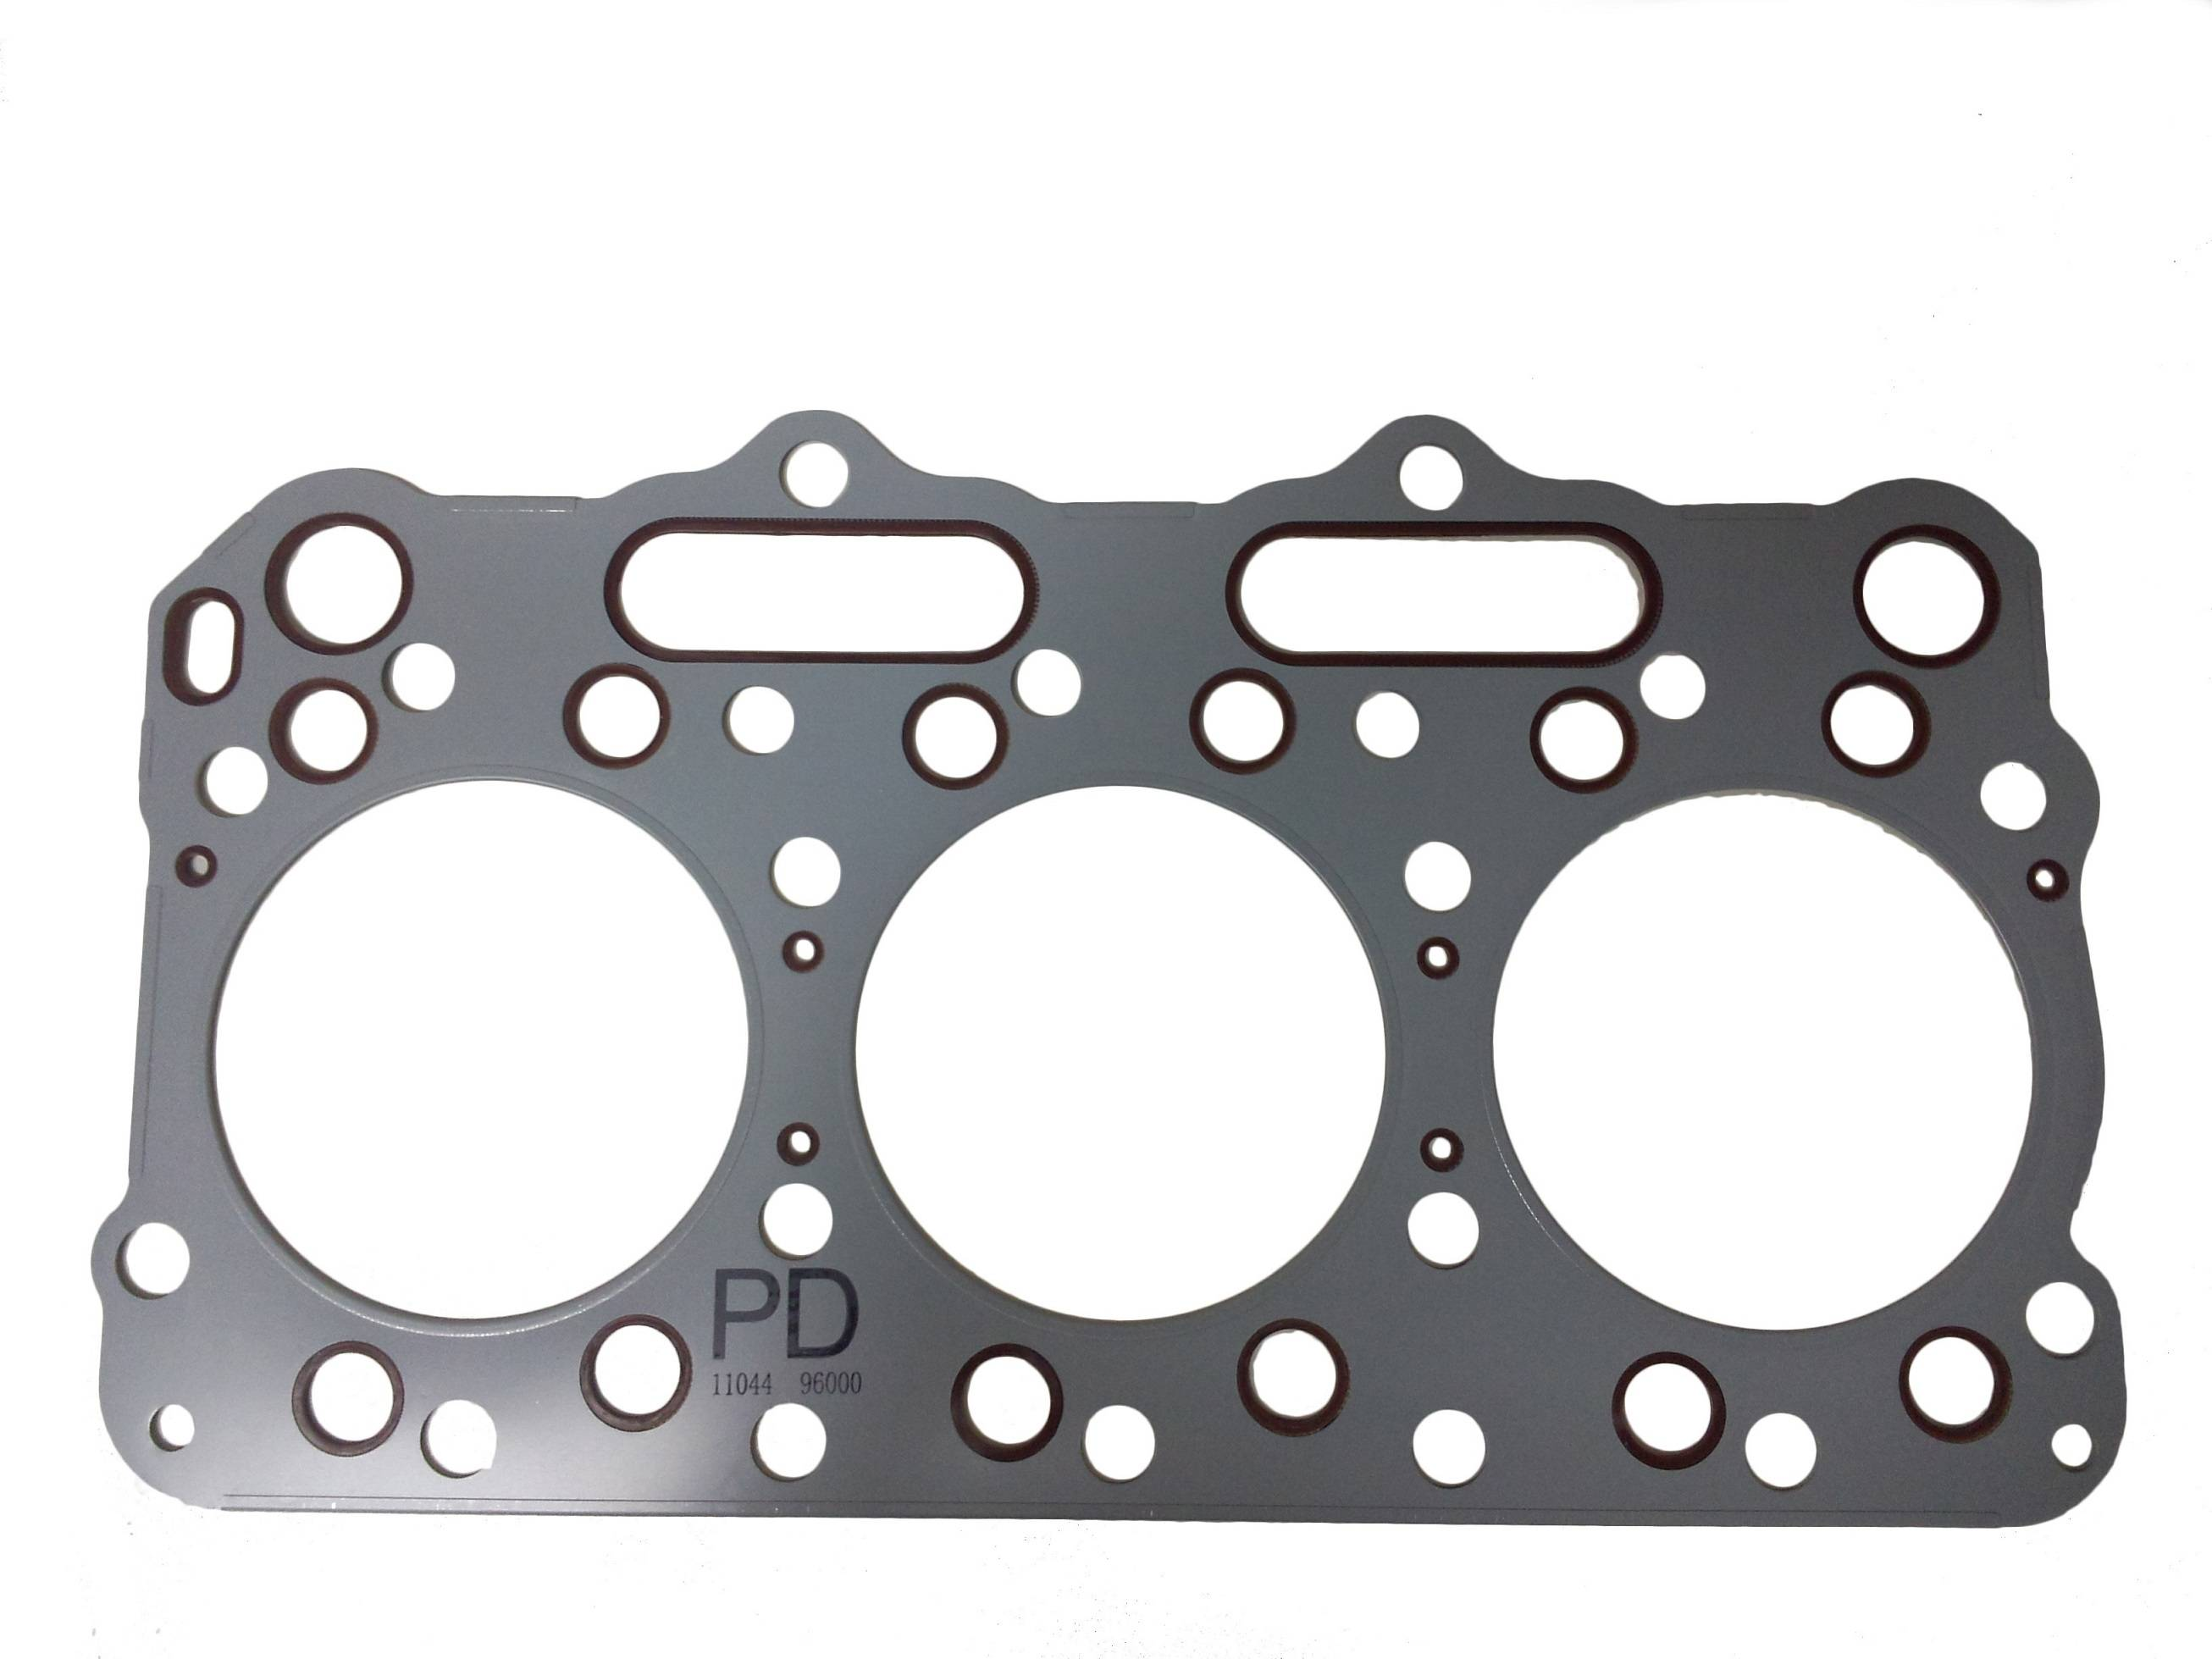 PD6 Cylinder head gasket, engine part, gasket kit